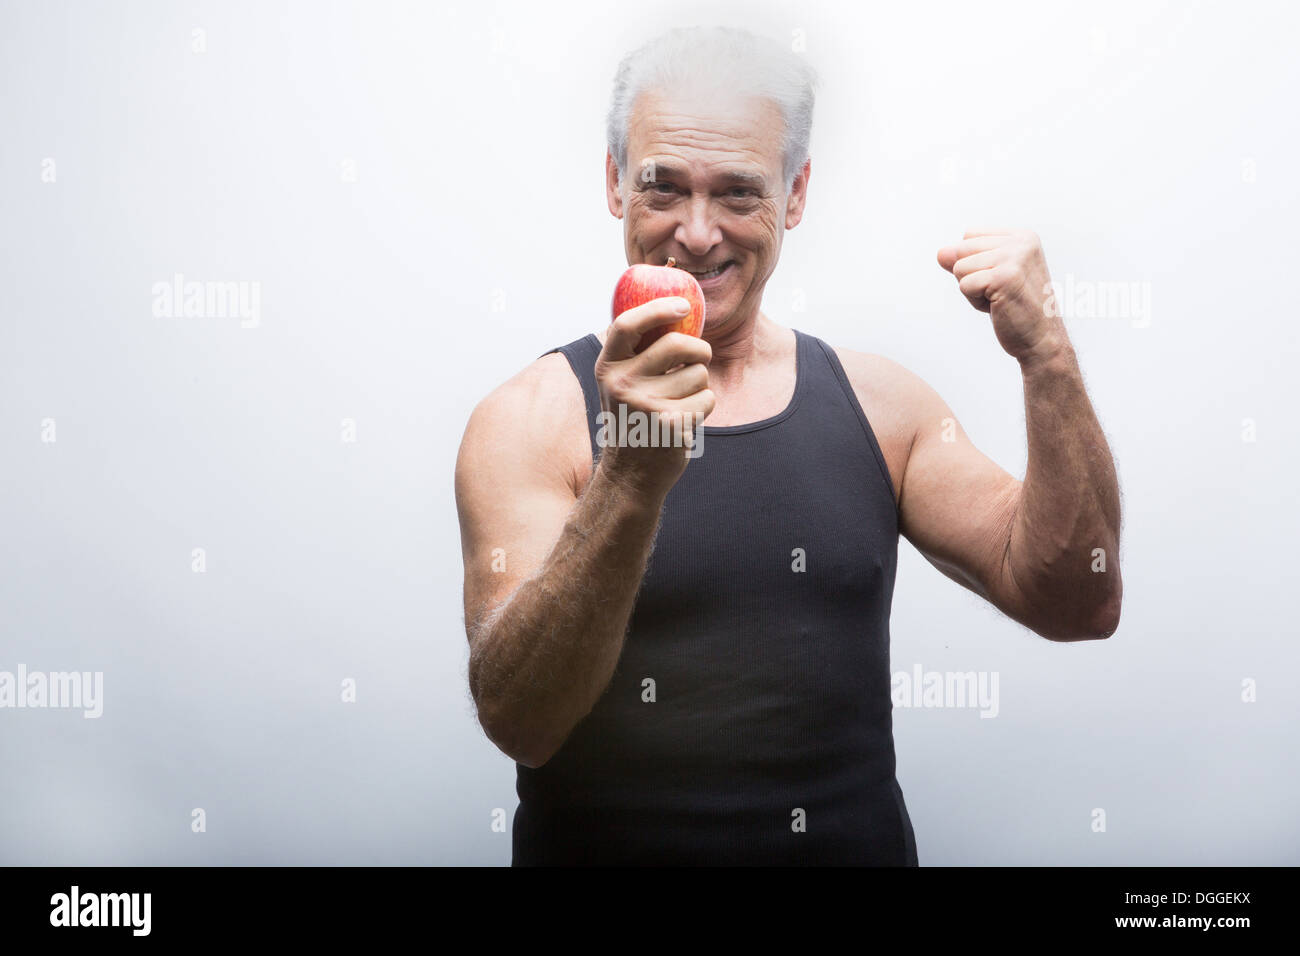 Senior man flexing muscle and holding apple, smiling - Stock Image